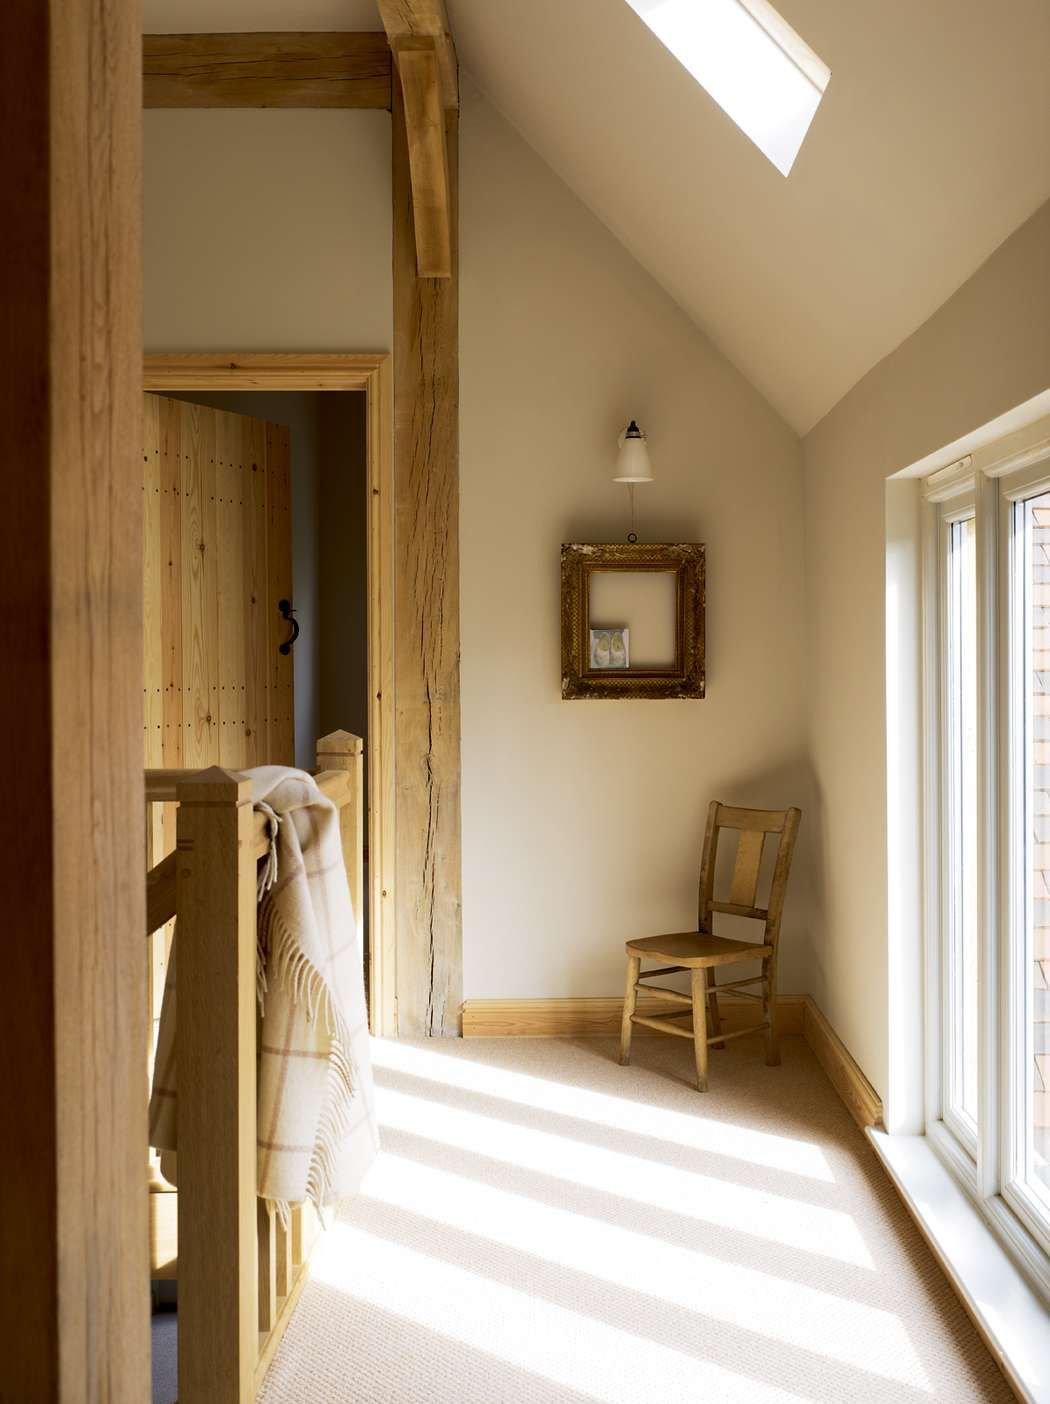 Homebuilding Renovating: Homebuilding & Renovating. I Like This Color Scheme For